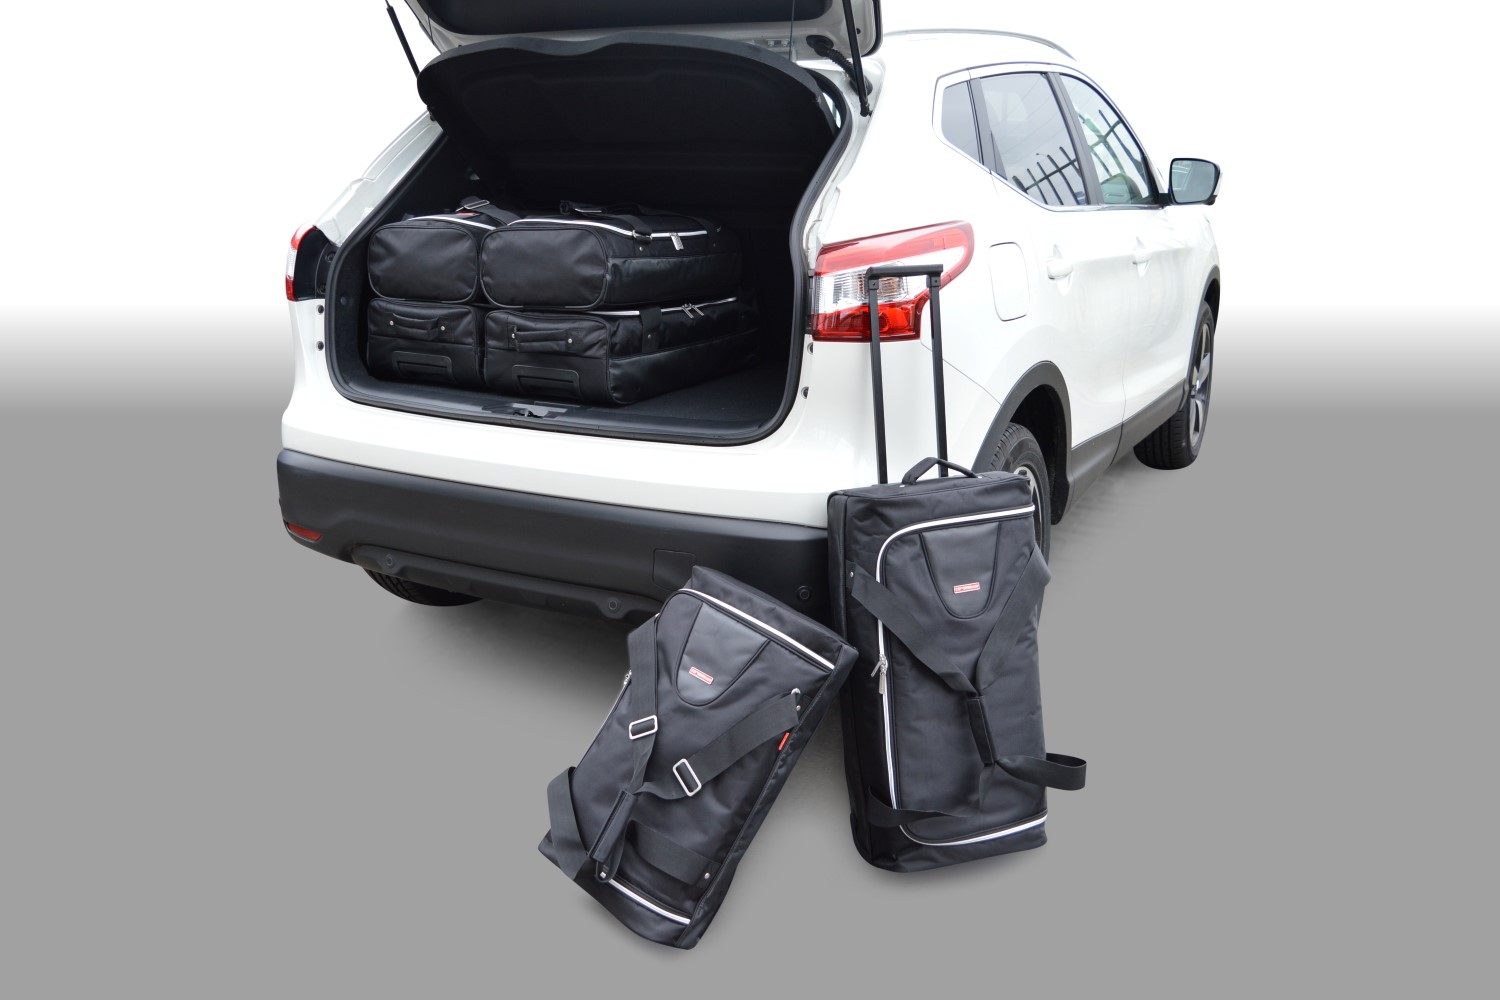 qashqai nissan qashqai j11 2014 heden car bags reistassenset. Black Bedroom Furniture Sets. Home Design Ideas